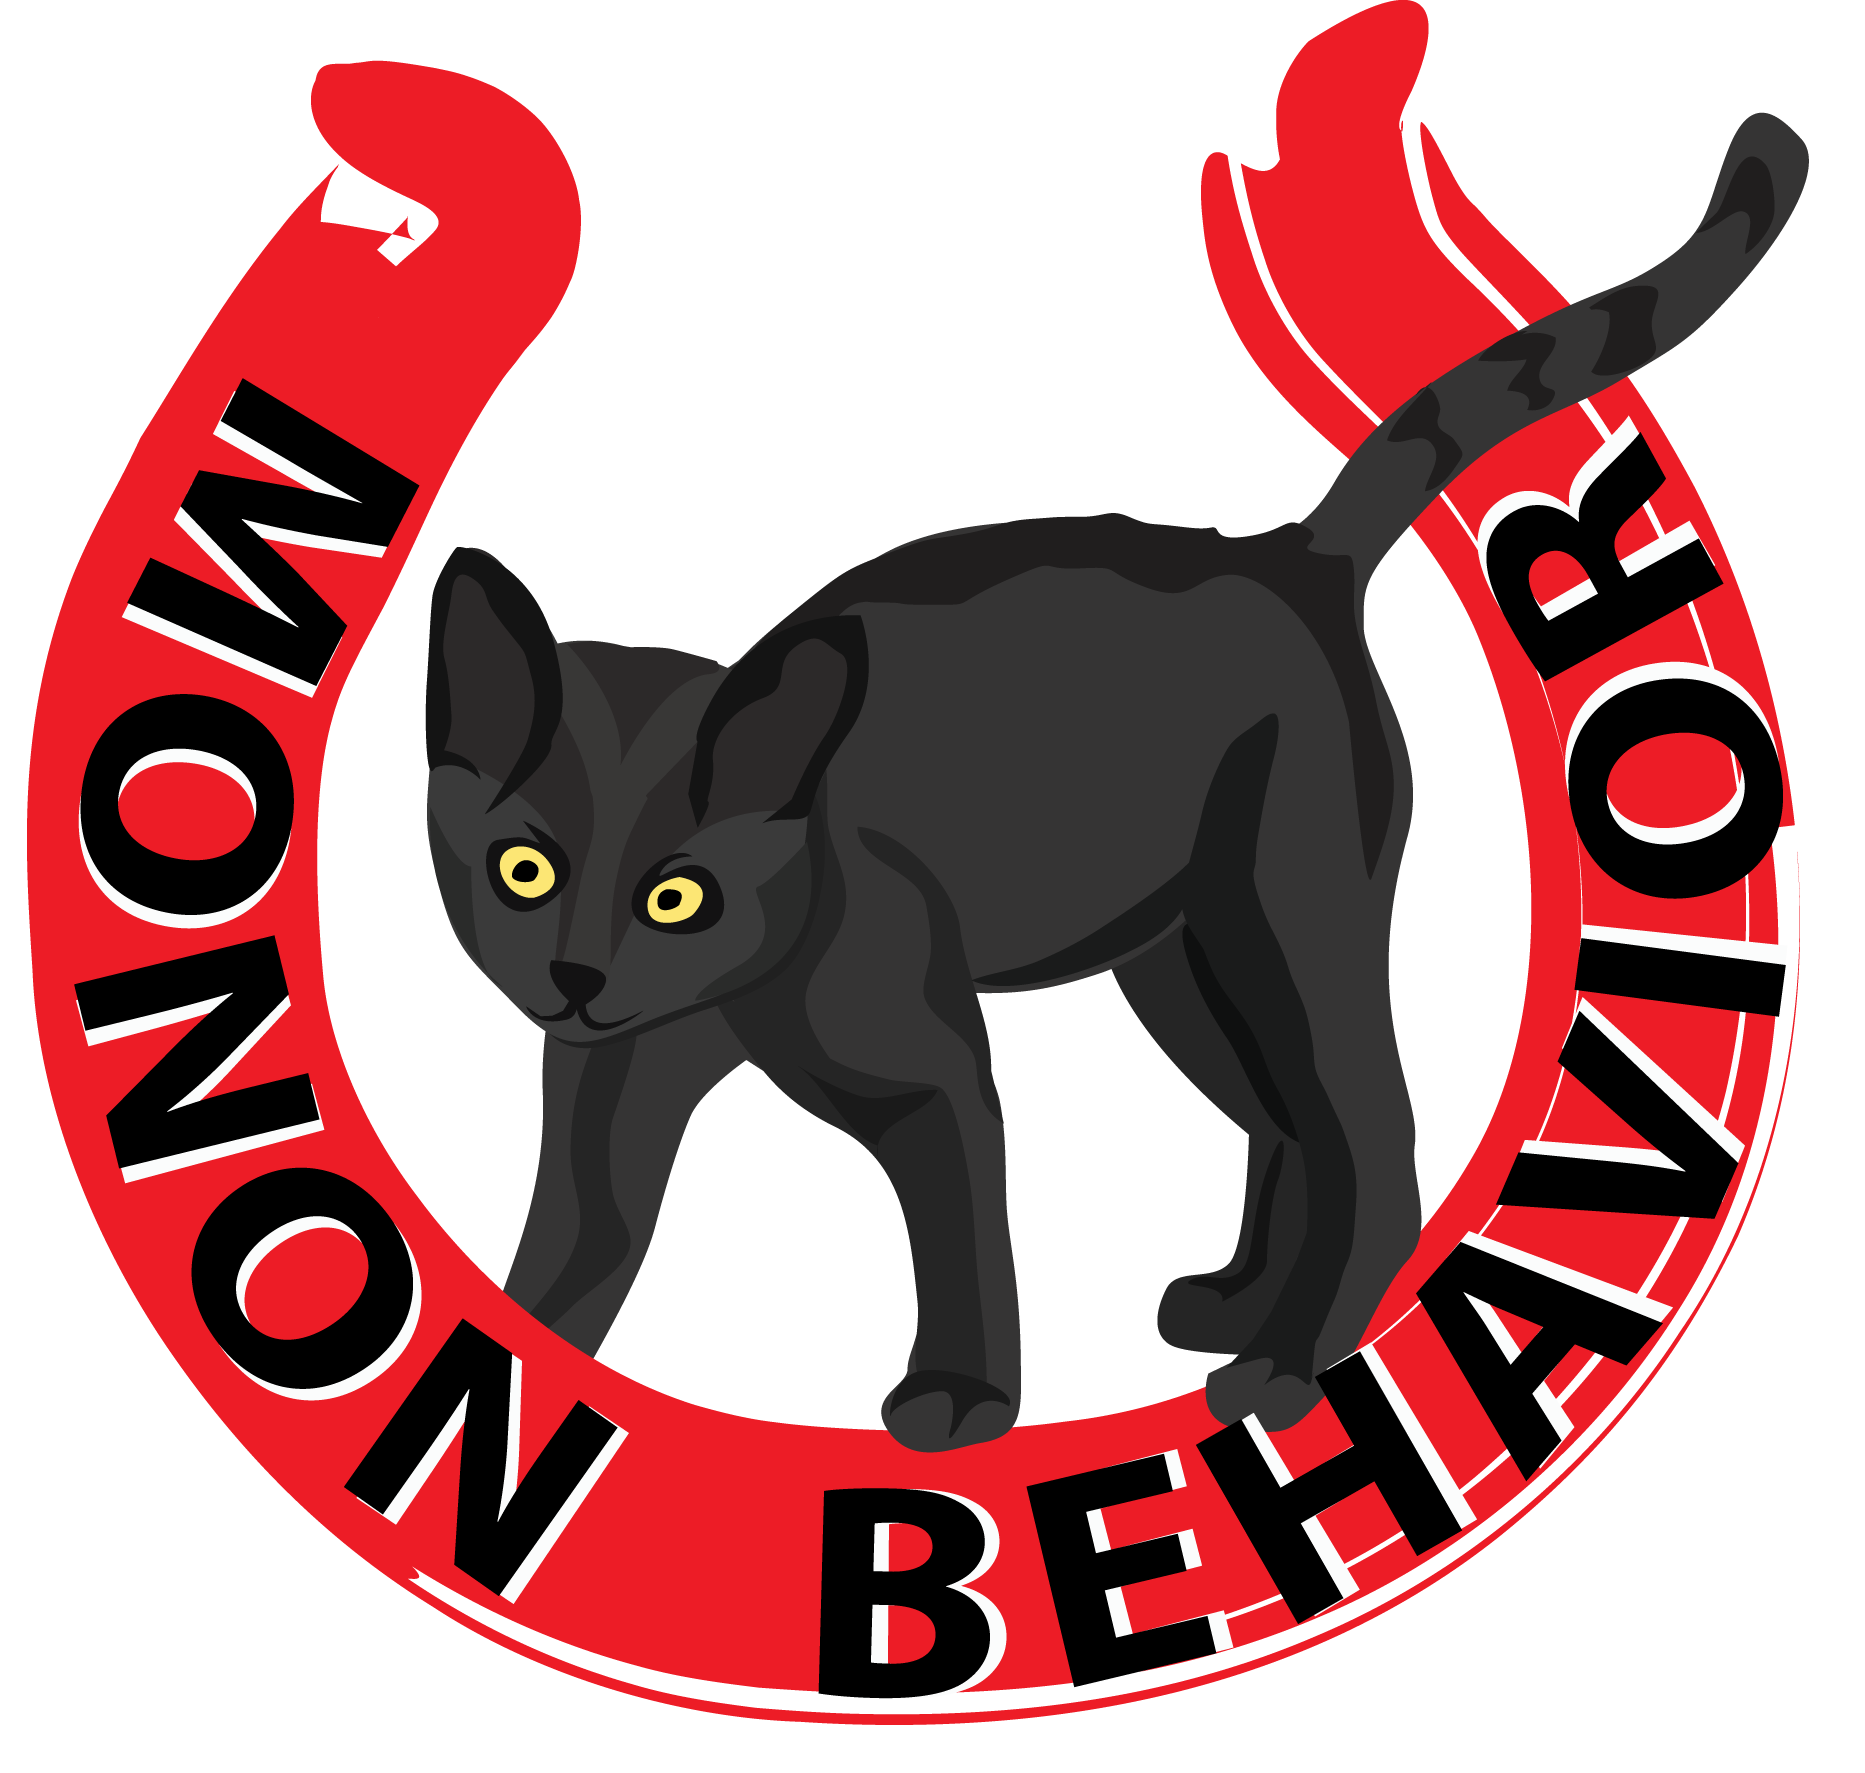 Monon Behaviour Research Department